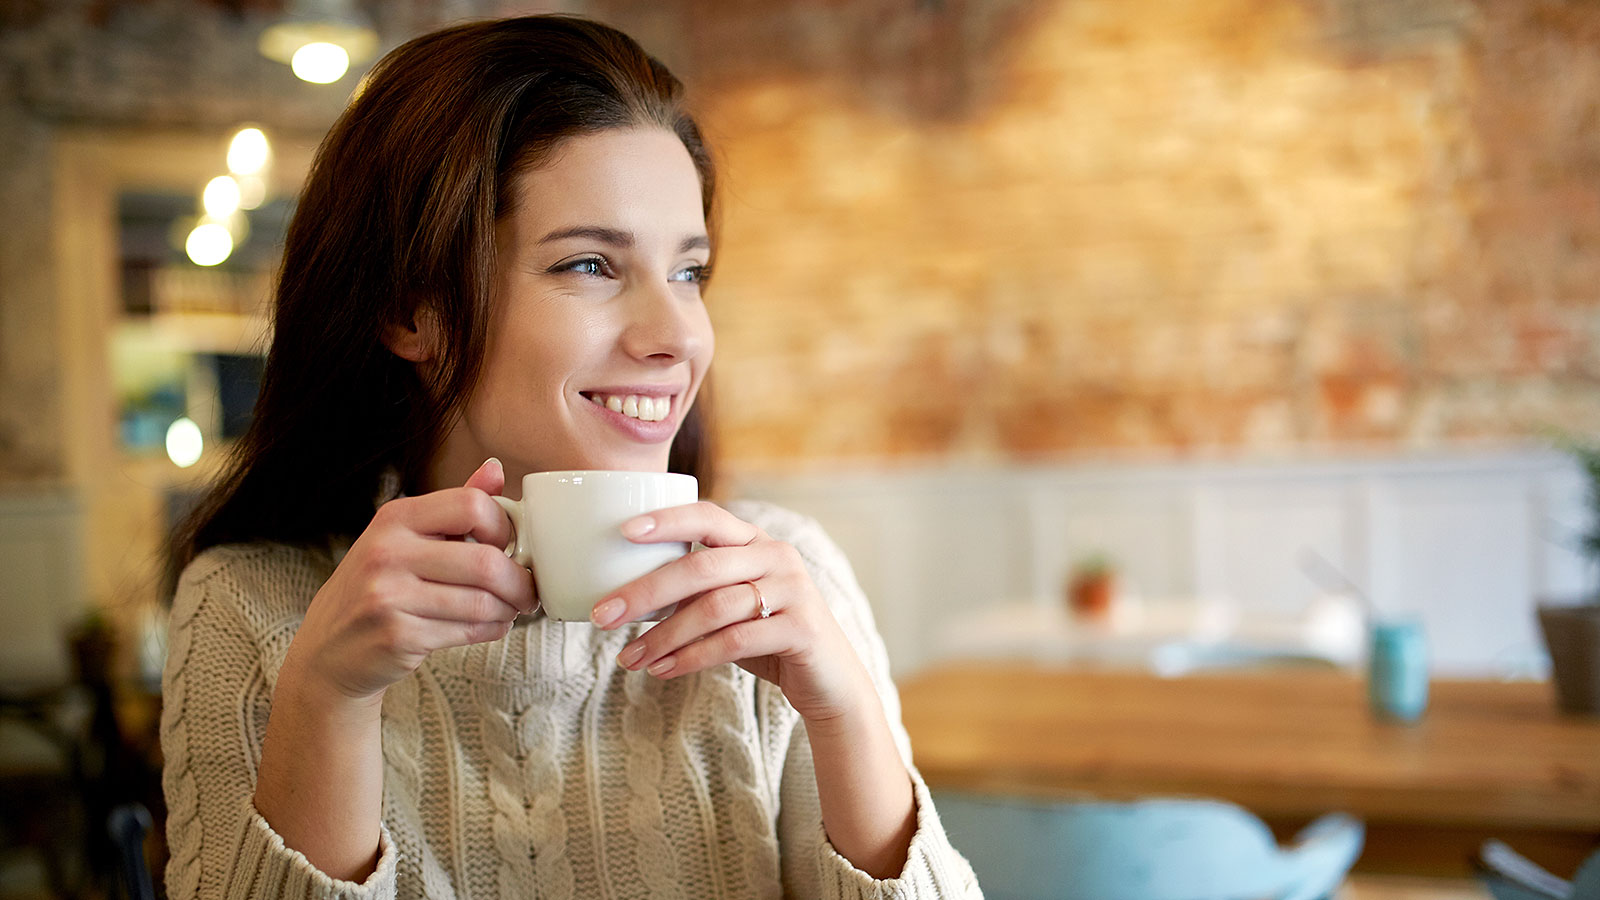 Replacing your coffee with this drink can increase your lifespan